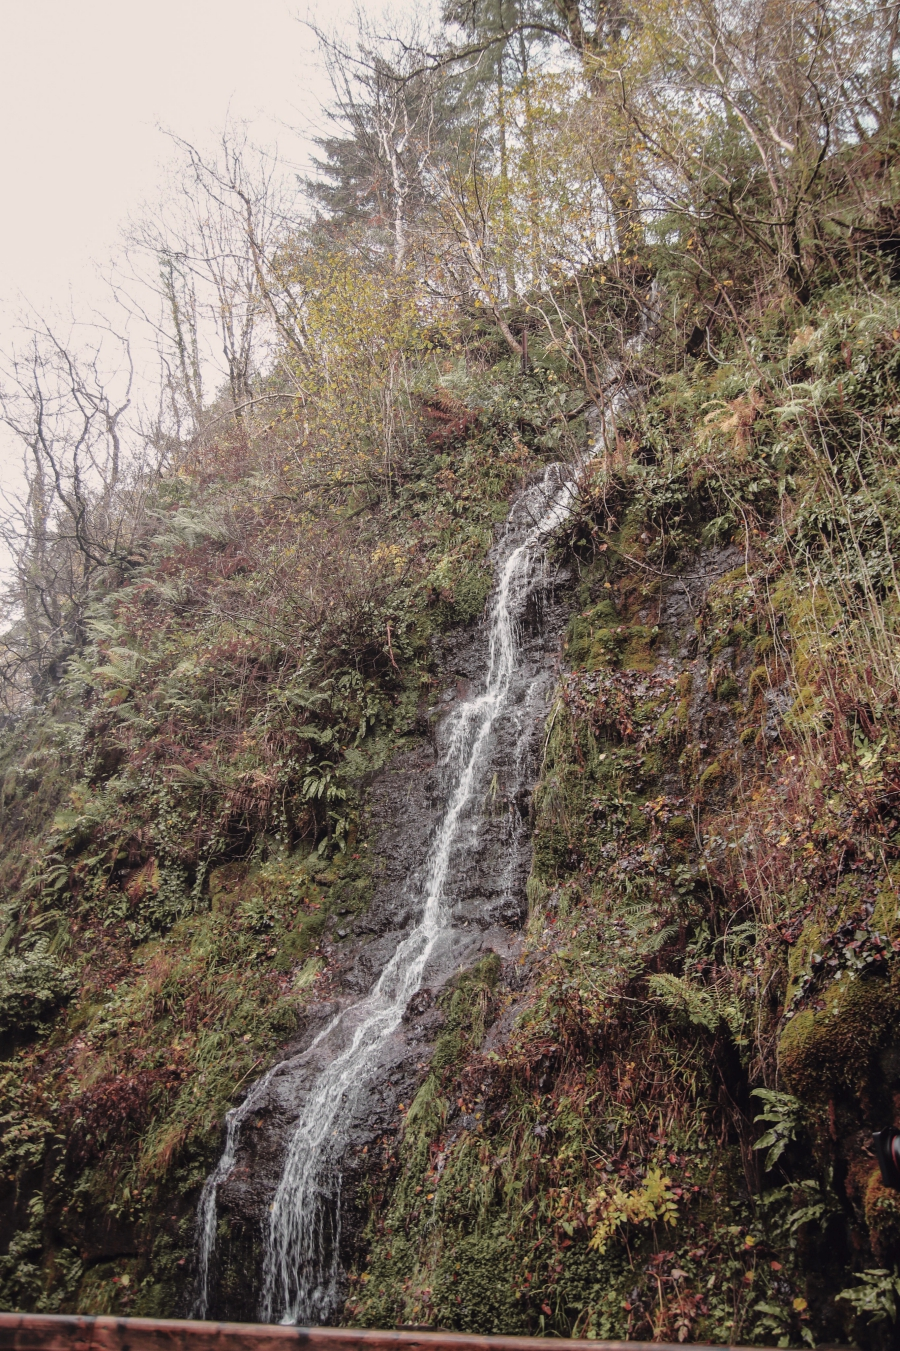 glenariff-forest-waterfall-northern-ireland-full-shilling-ni-explorer (6).jpg